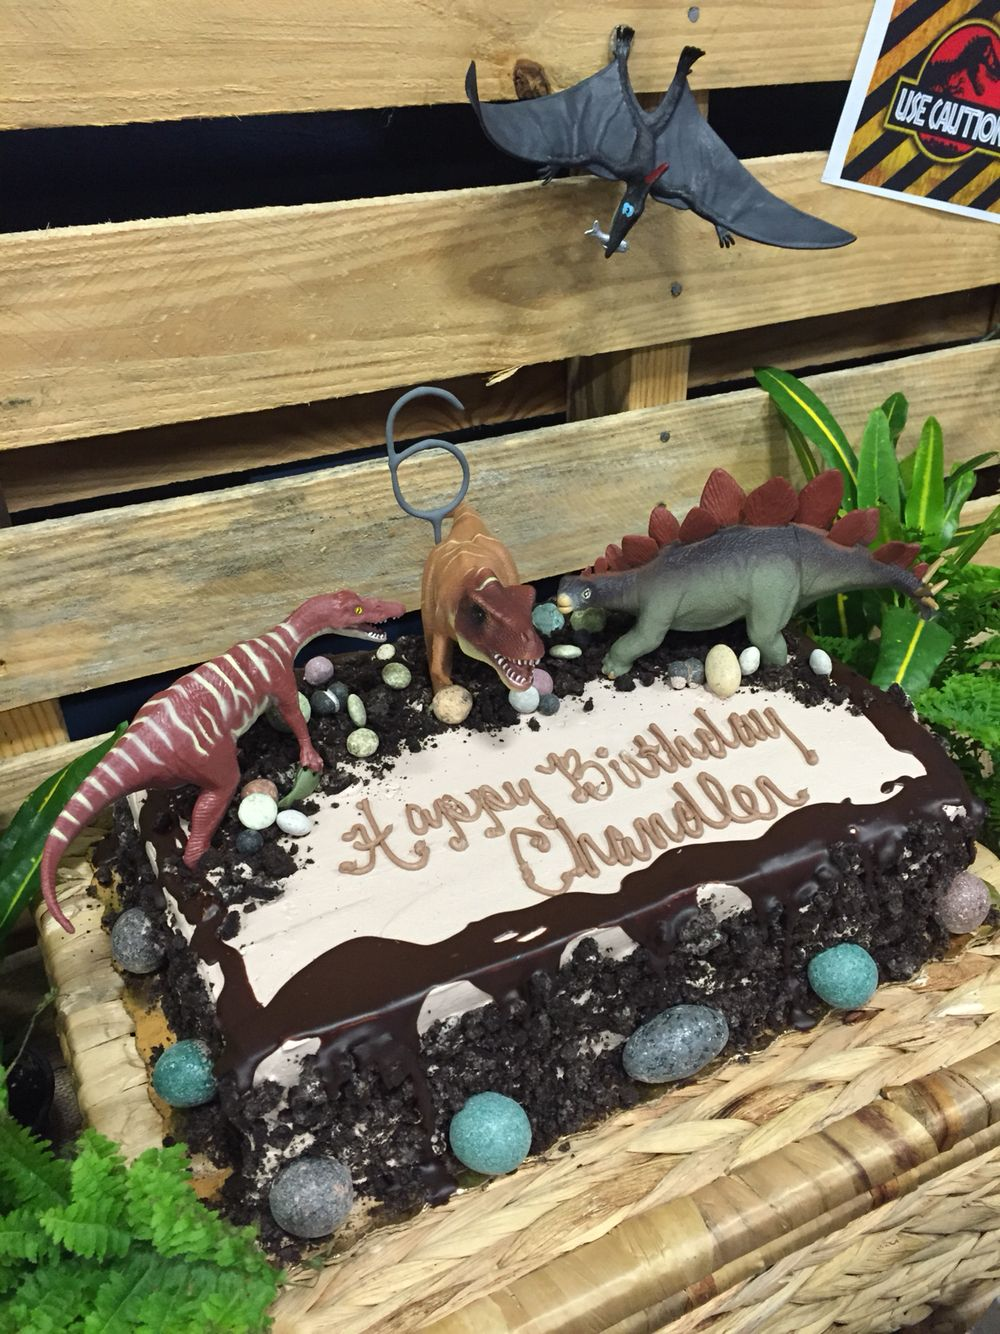 Dinosaur cake oreo cake from publix without whole cookies